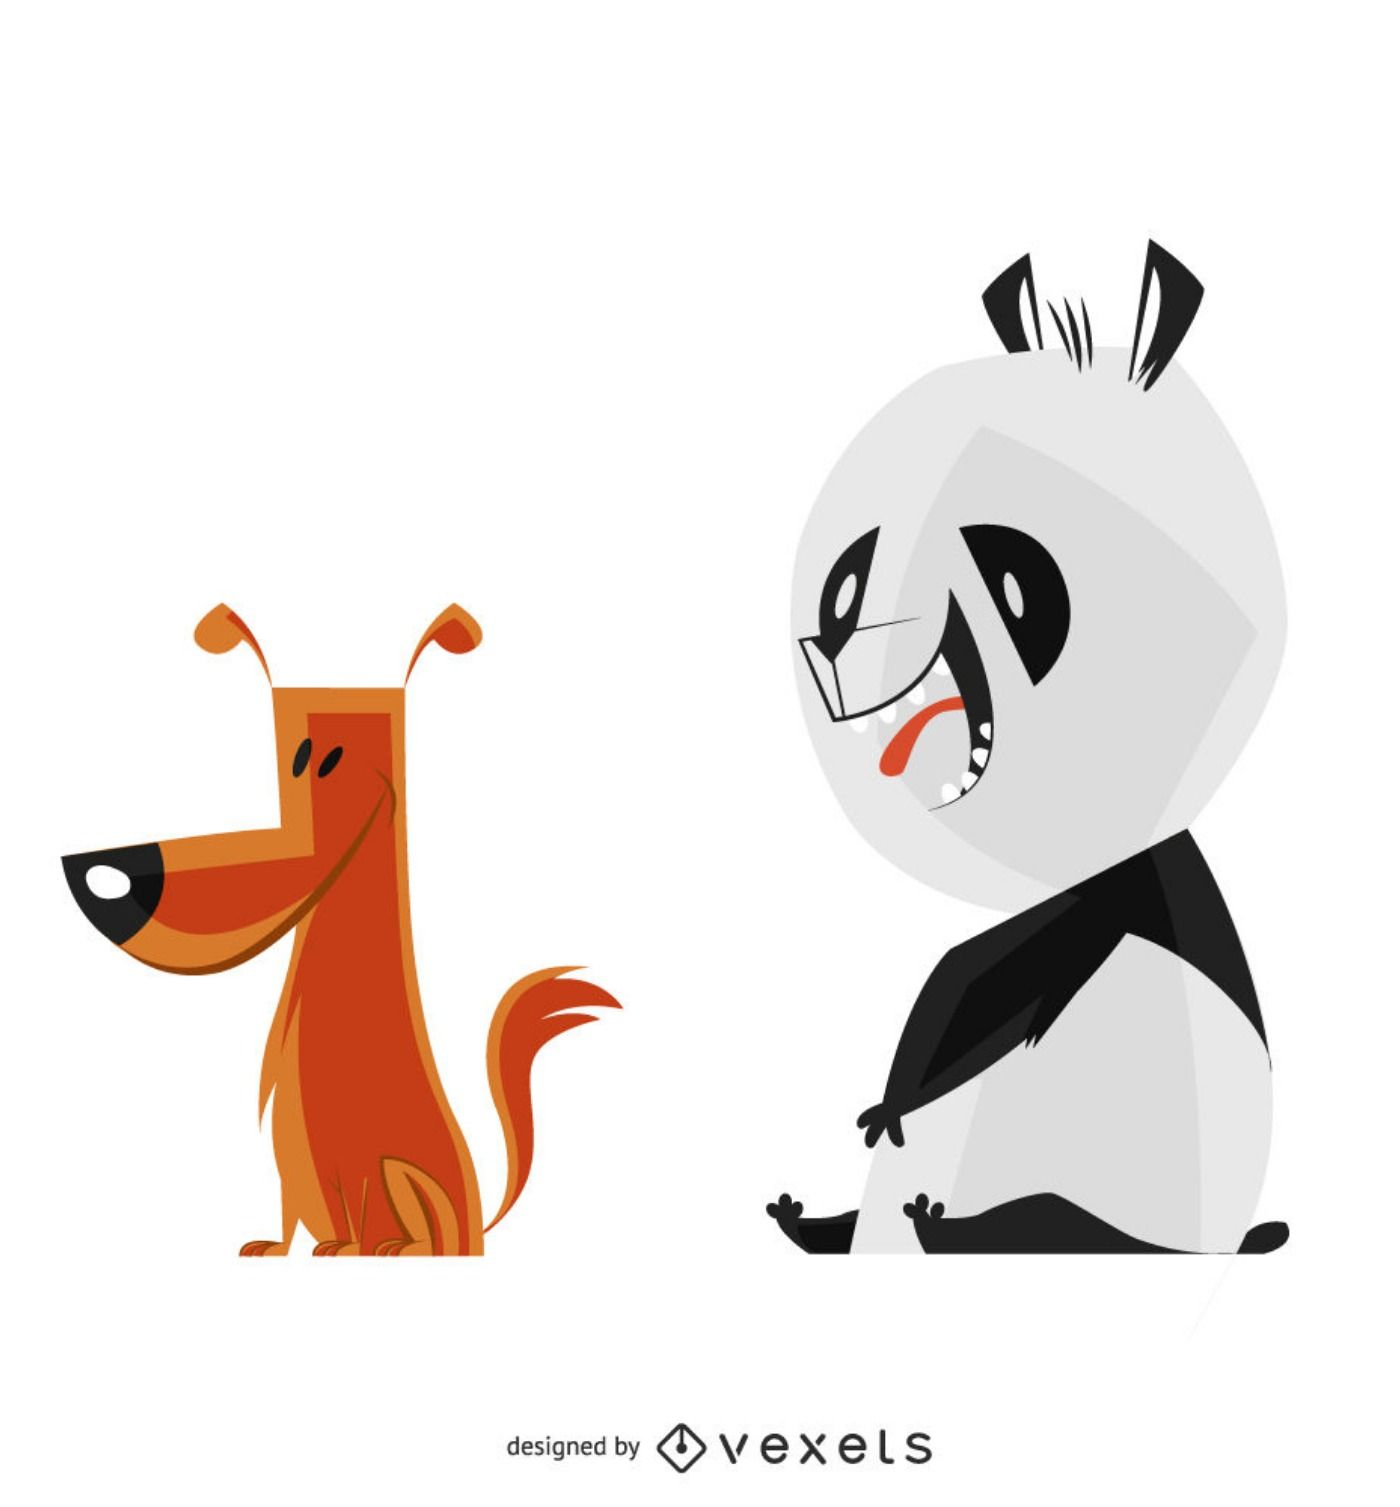 Need a cute panda or dog vector design for your project